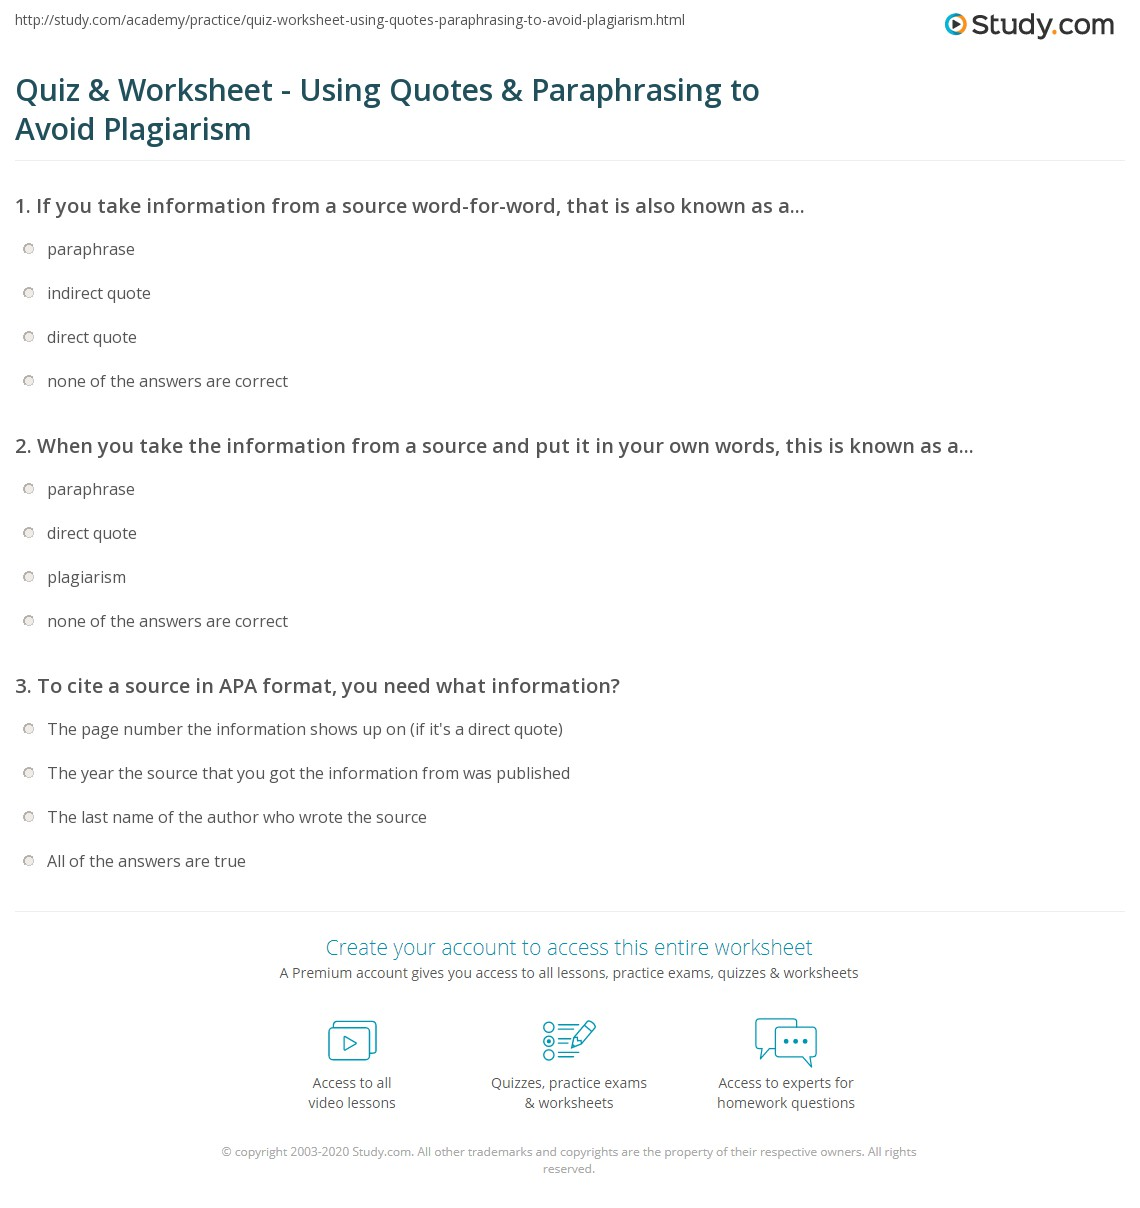 worksheet paraphrasing worksheet worksheet study site paraphrasing printable worksheets paraphrasing